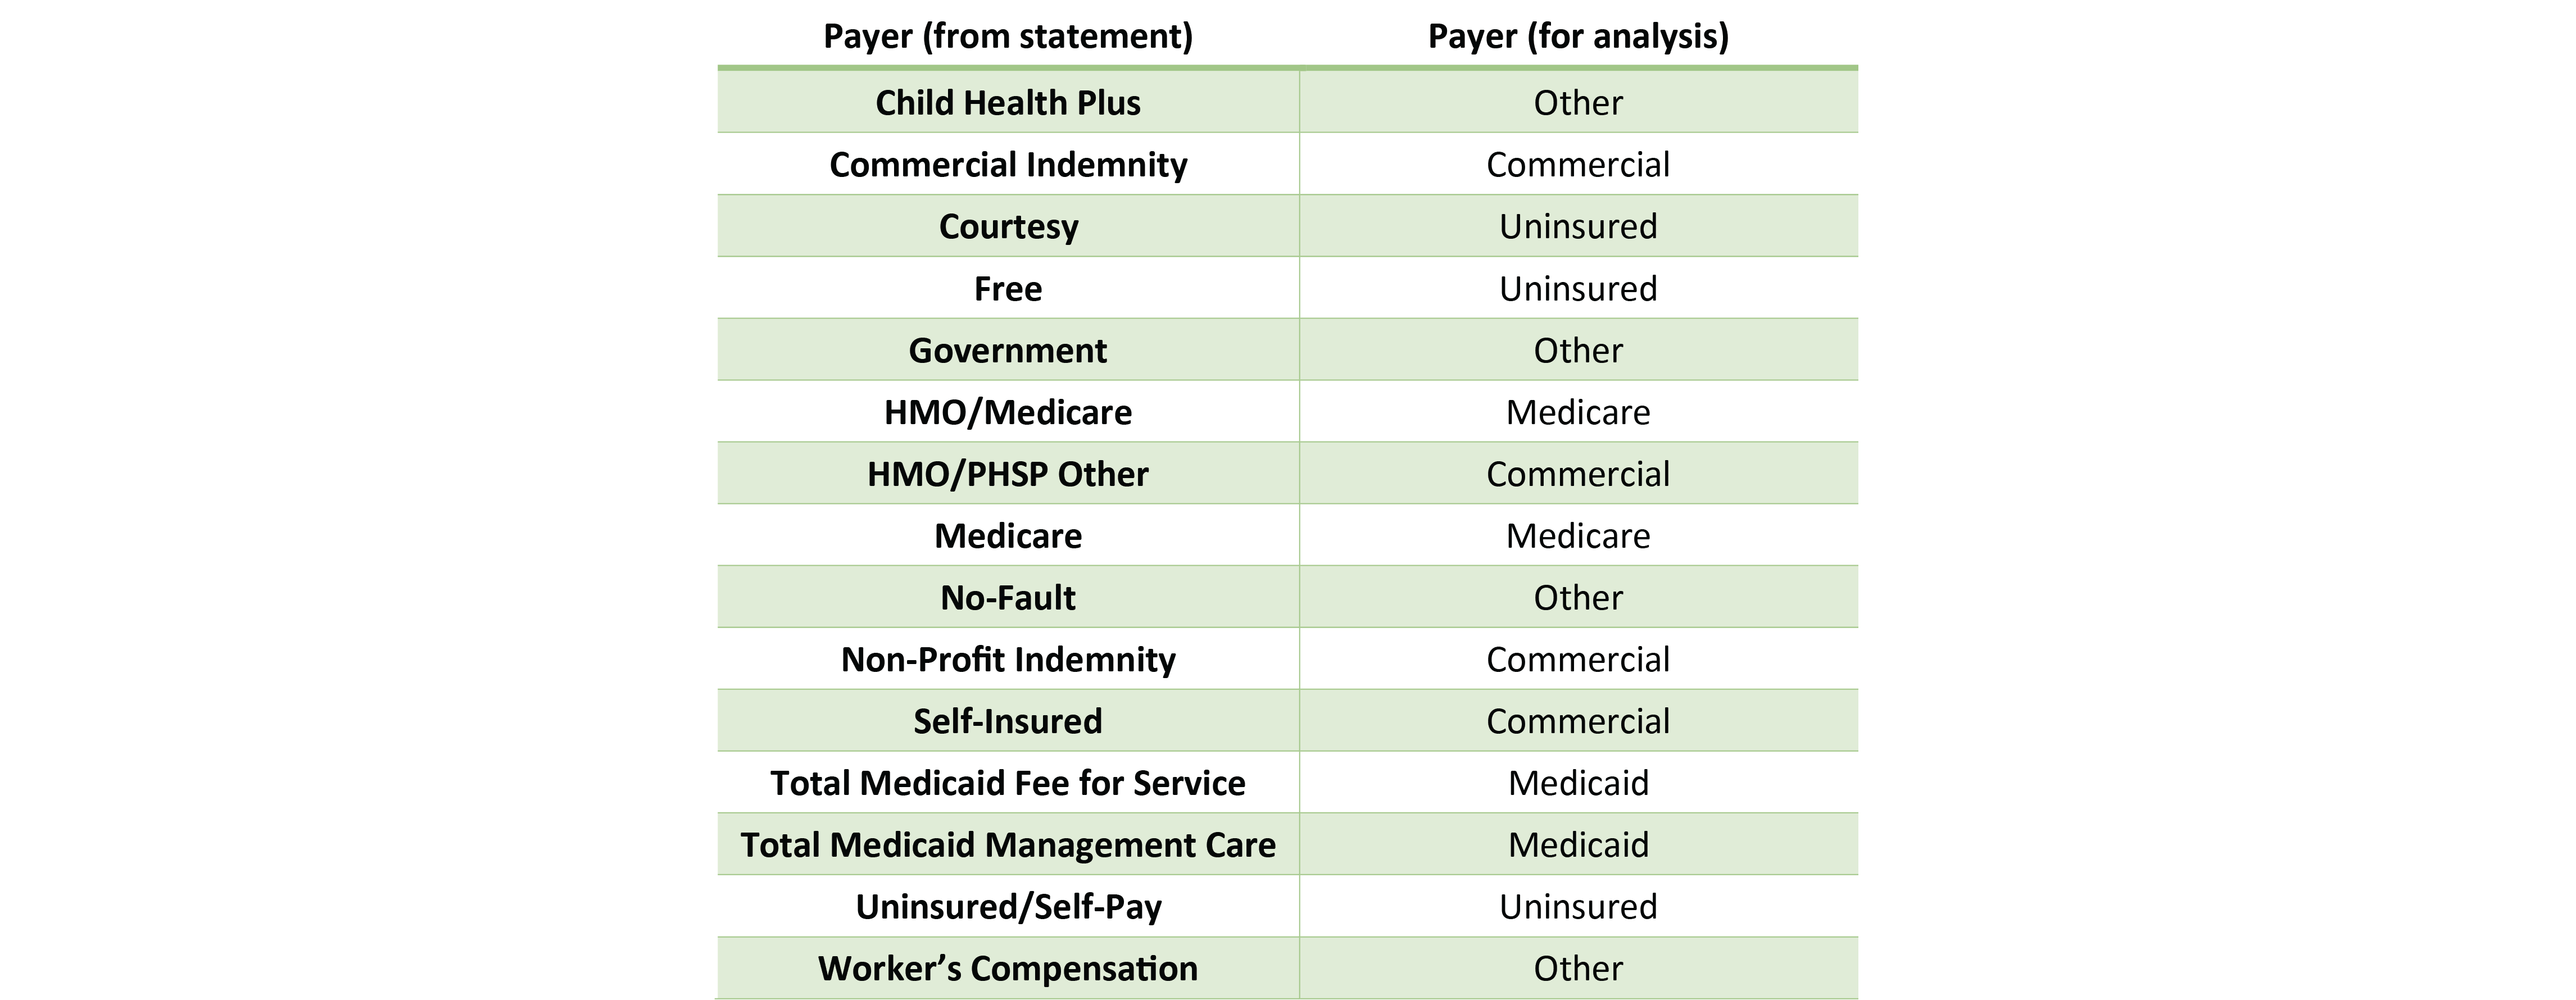 Mapping of Revenue and Utilization to Payers – Clinic